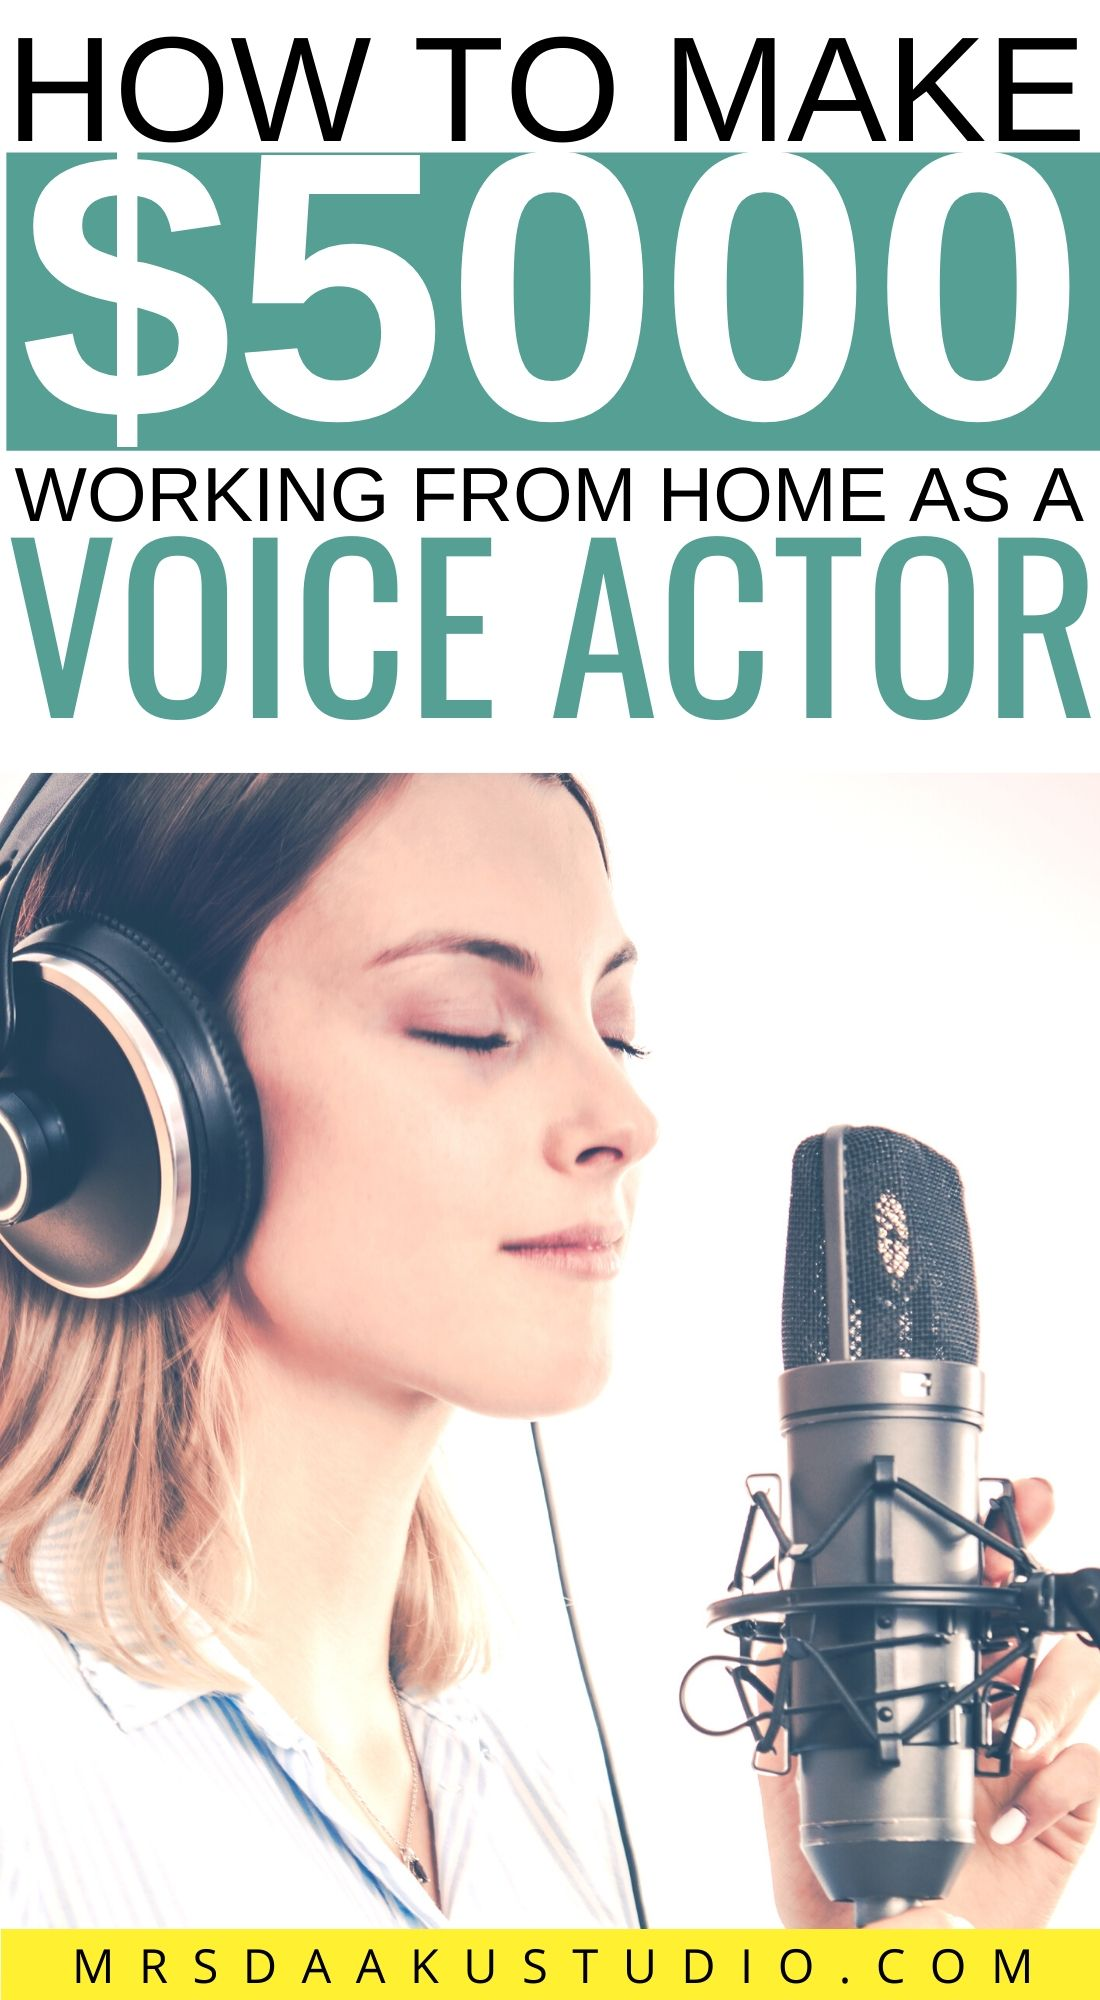 Voice over jobs for beginners from home: Ultimate Guide 101